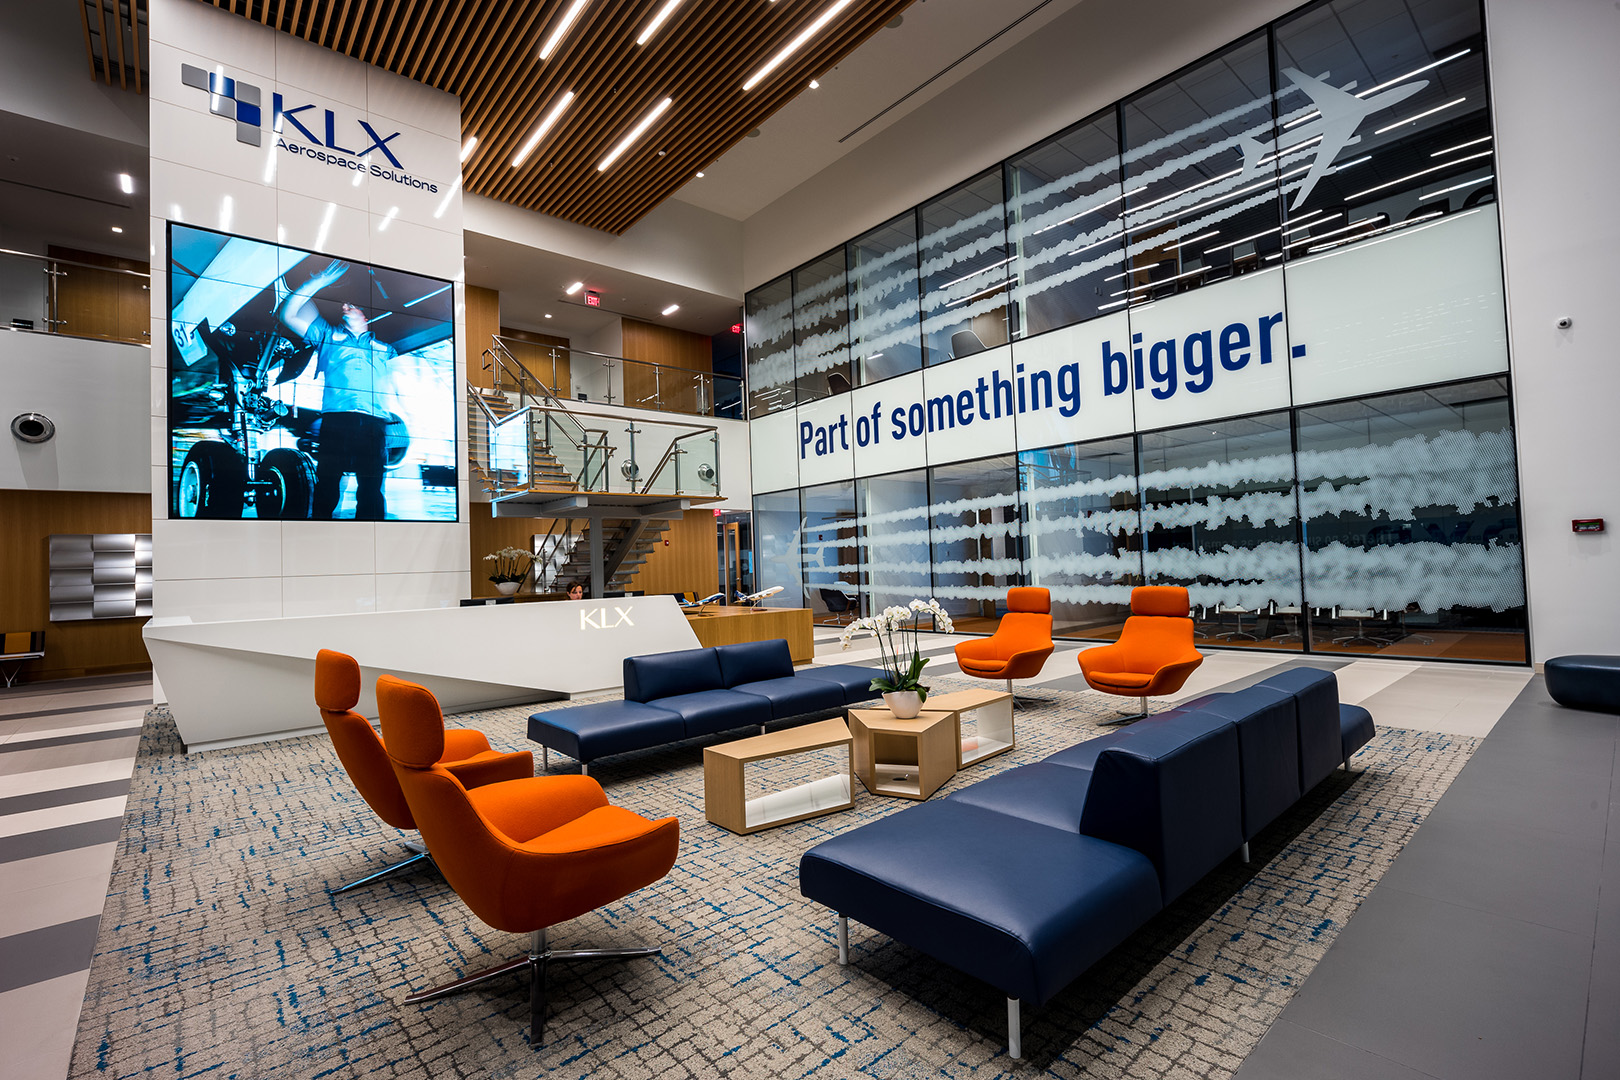 ddi KLX Boeing Corporate Lobby Video Wall Project